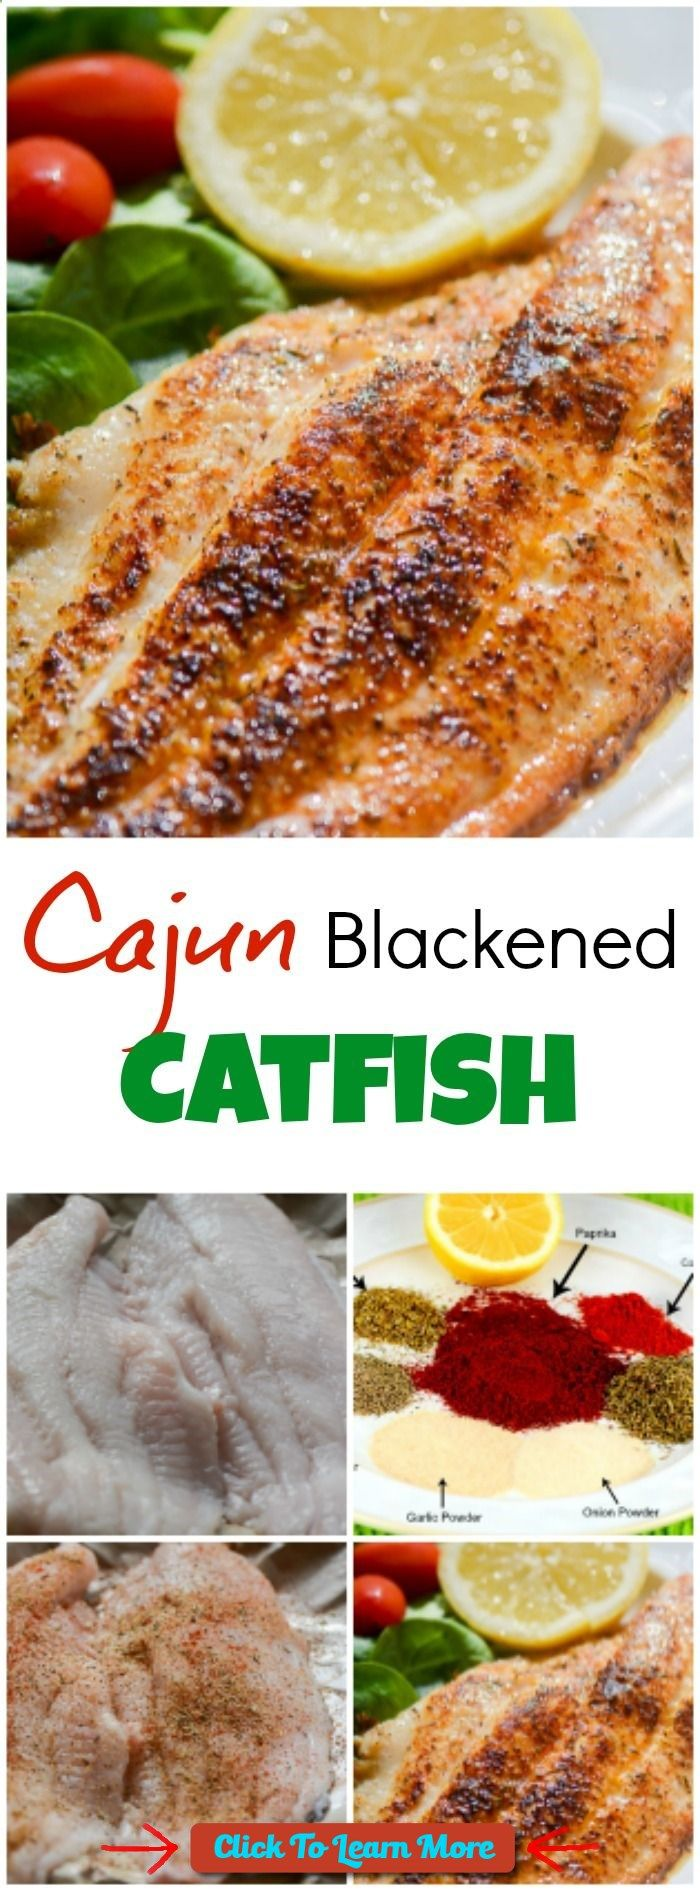 #FastestWayToLoseWeight by EATING, Click to learn more, Cajun Blackened Catfish is a quick and easy, healthy, delicious, spicy seafood recipe that makes an excellent weeknight supper, or Mardi Gras Dinner, and fits into most healthy eating plans, including low fat, low carb, gluten-free, and paleo. ~ FlavorMosaic.com , #HealthyRecipes, #FitnessRecipes, #BurnFatRecipes, #WeightLossRecipes, #WeightLossDiets